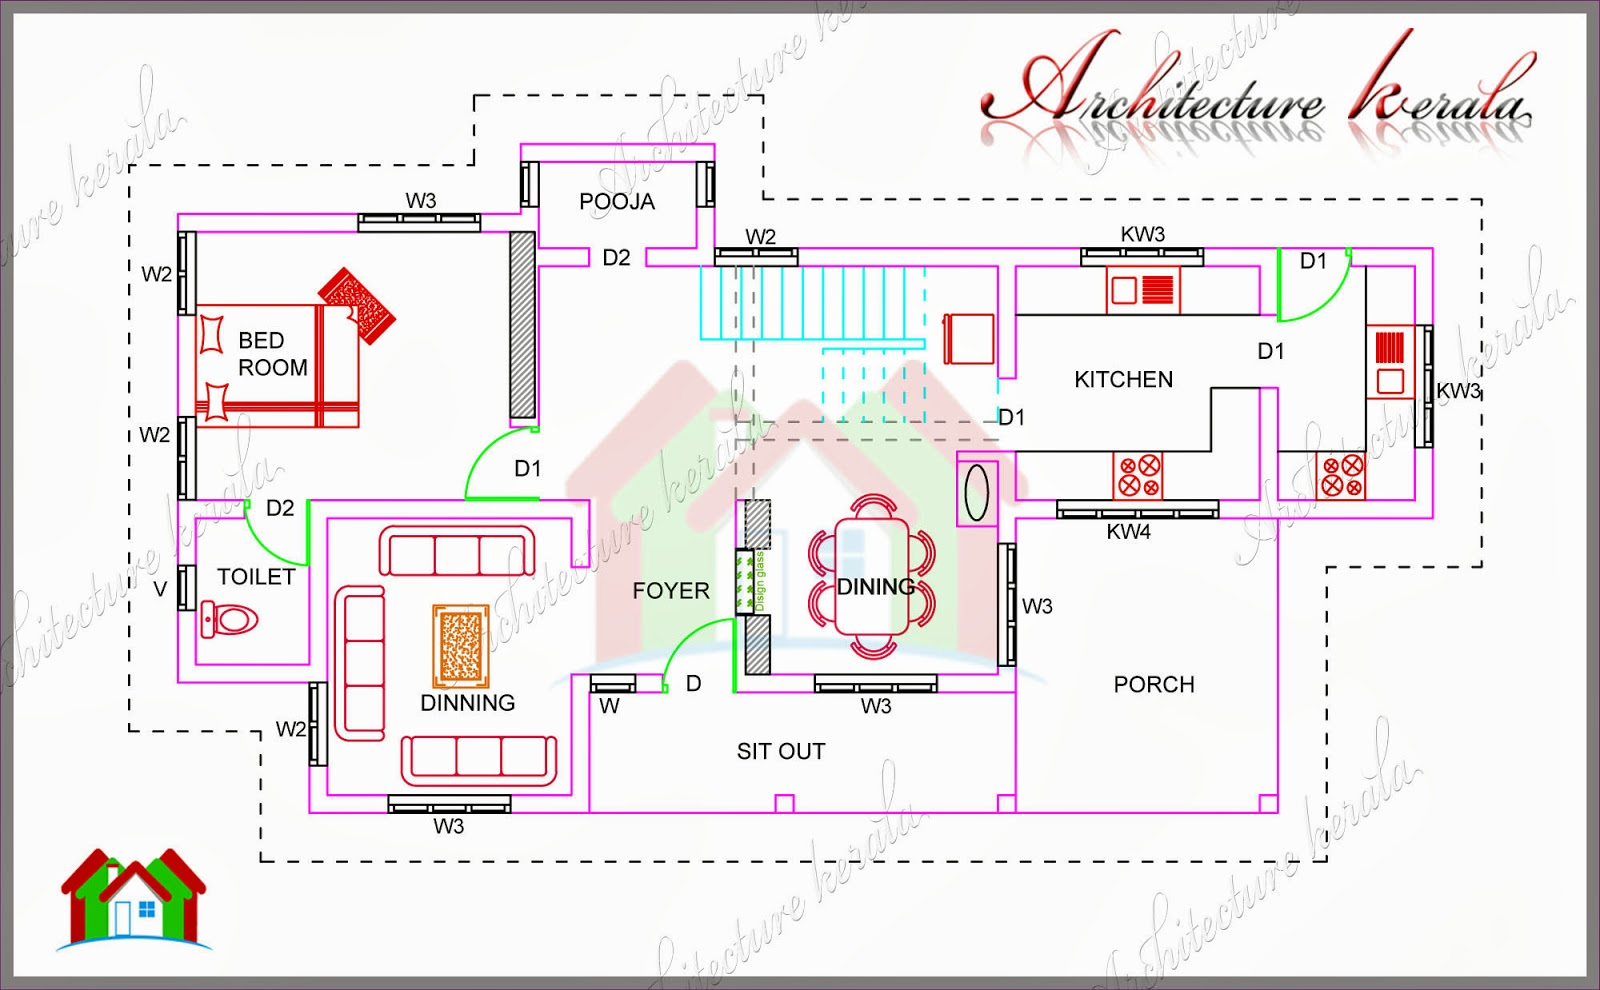 1700 SQUARE FEET HOUSE PLAN WITH POOJA ROOM ARCHITECTURE